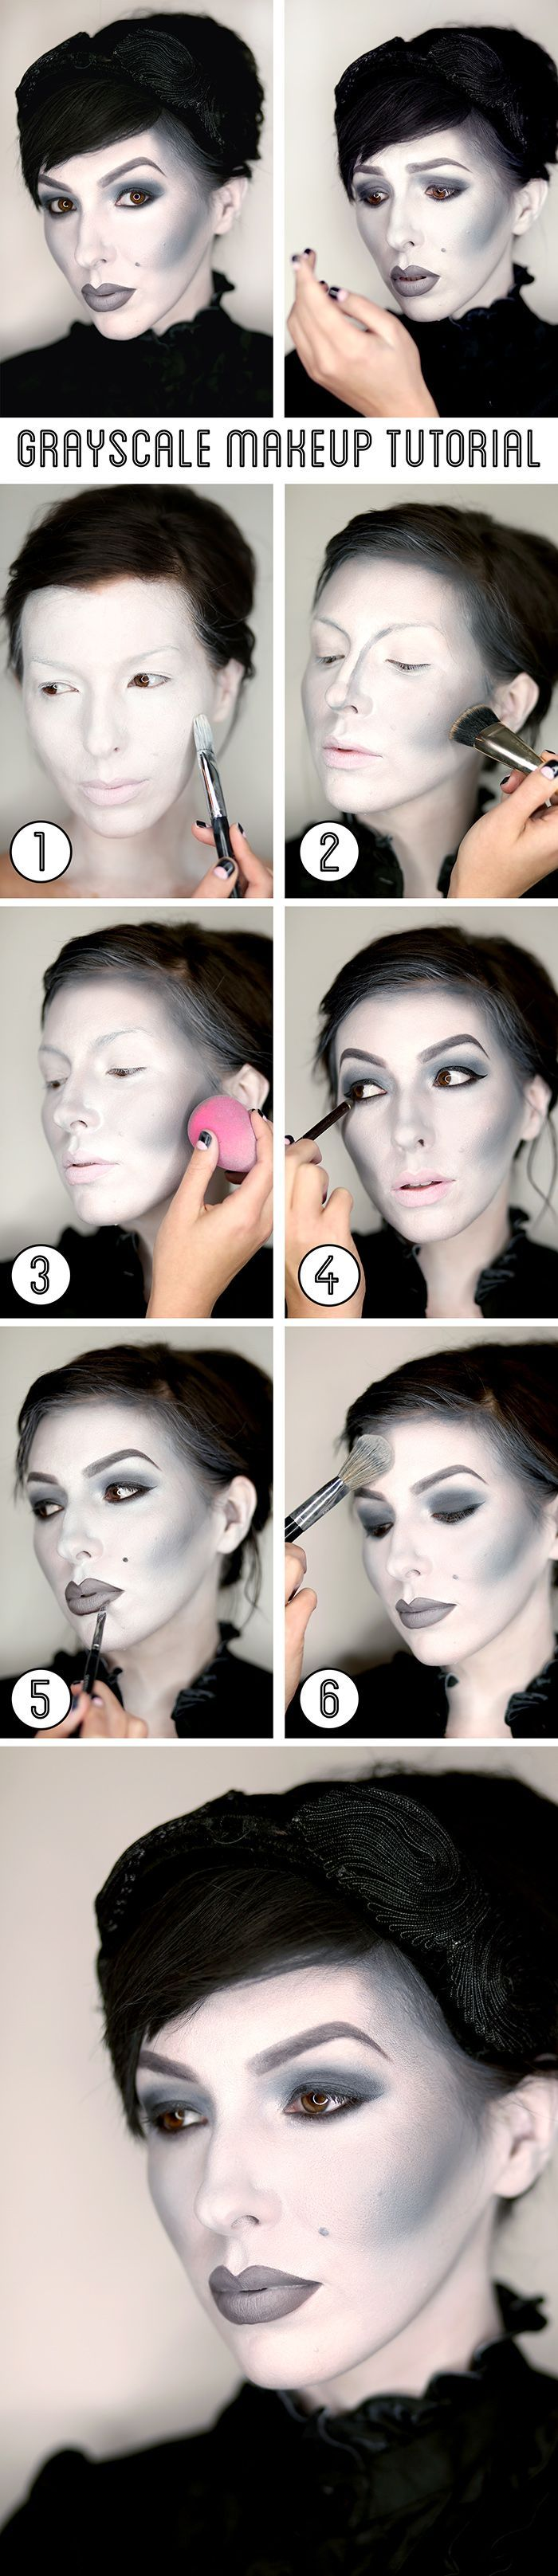 Grayscale makeup tutorial // halloween makeup tutorial, diy halloween makeup, easy halloween costume, last minute halloween ideas